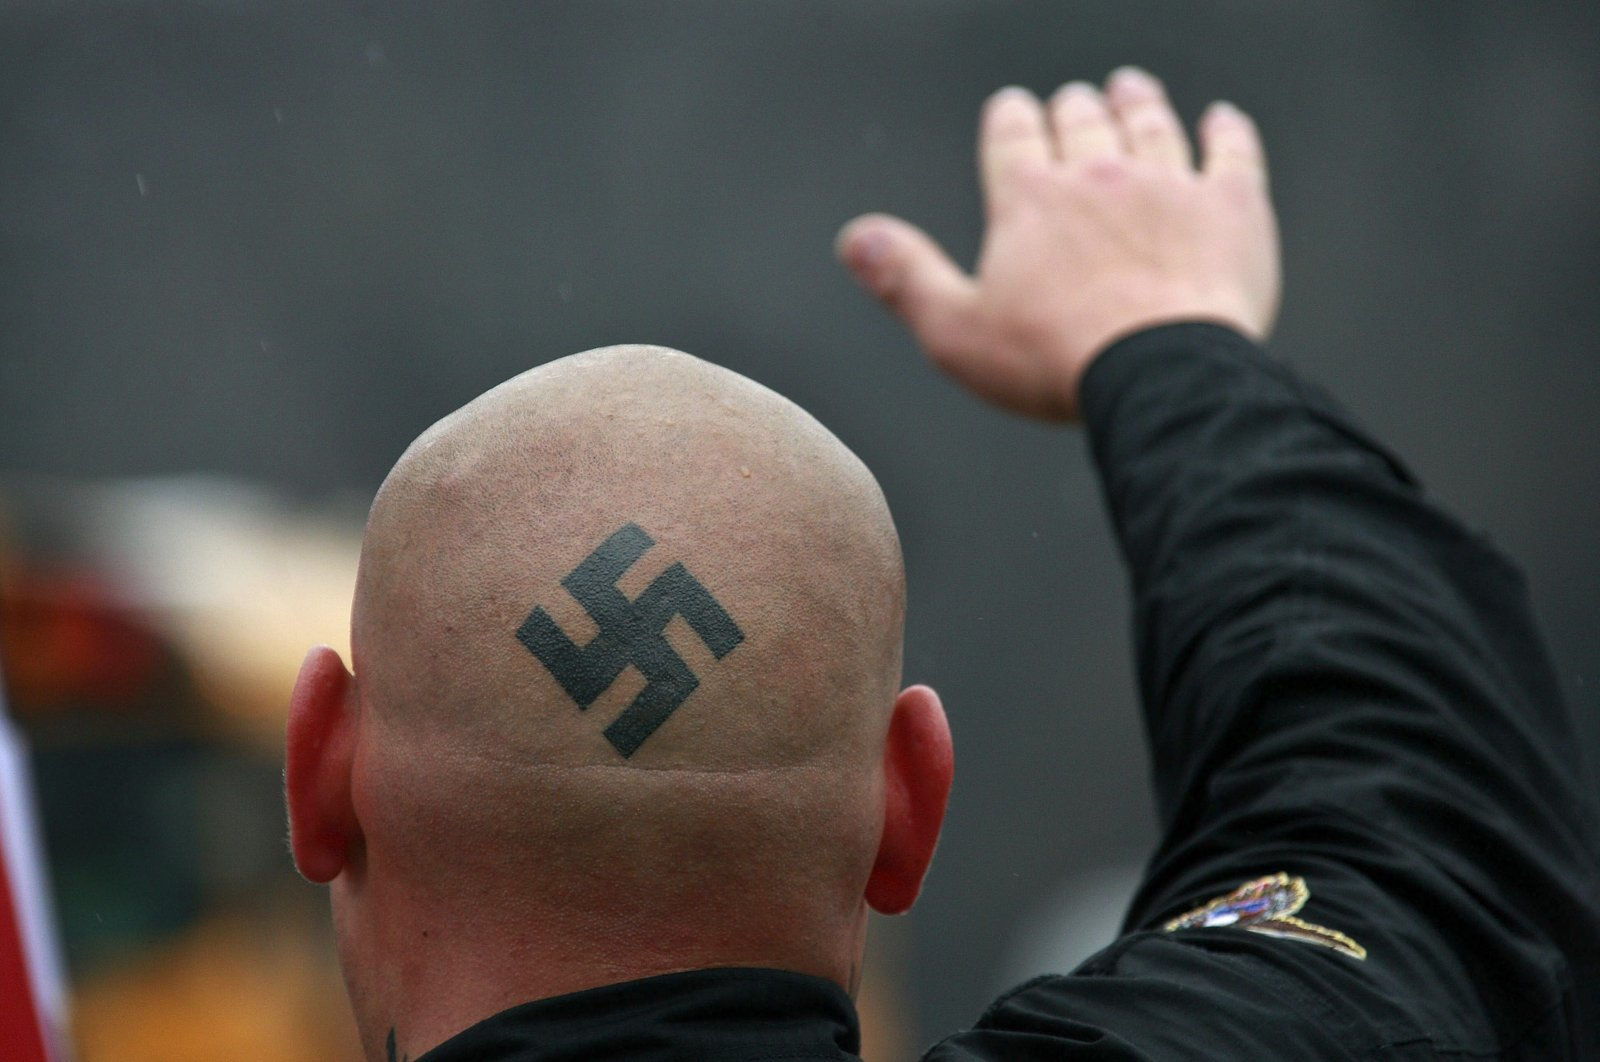 Neo-Nazi protesters demonstrate in Skokie, Illinois, U.S., April 19, 2009. (Getty Images)